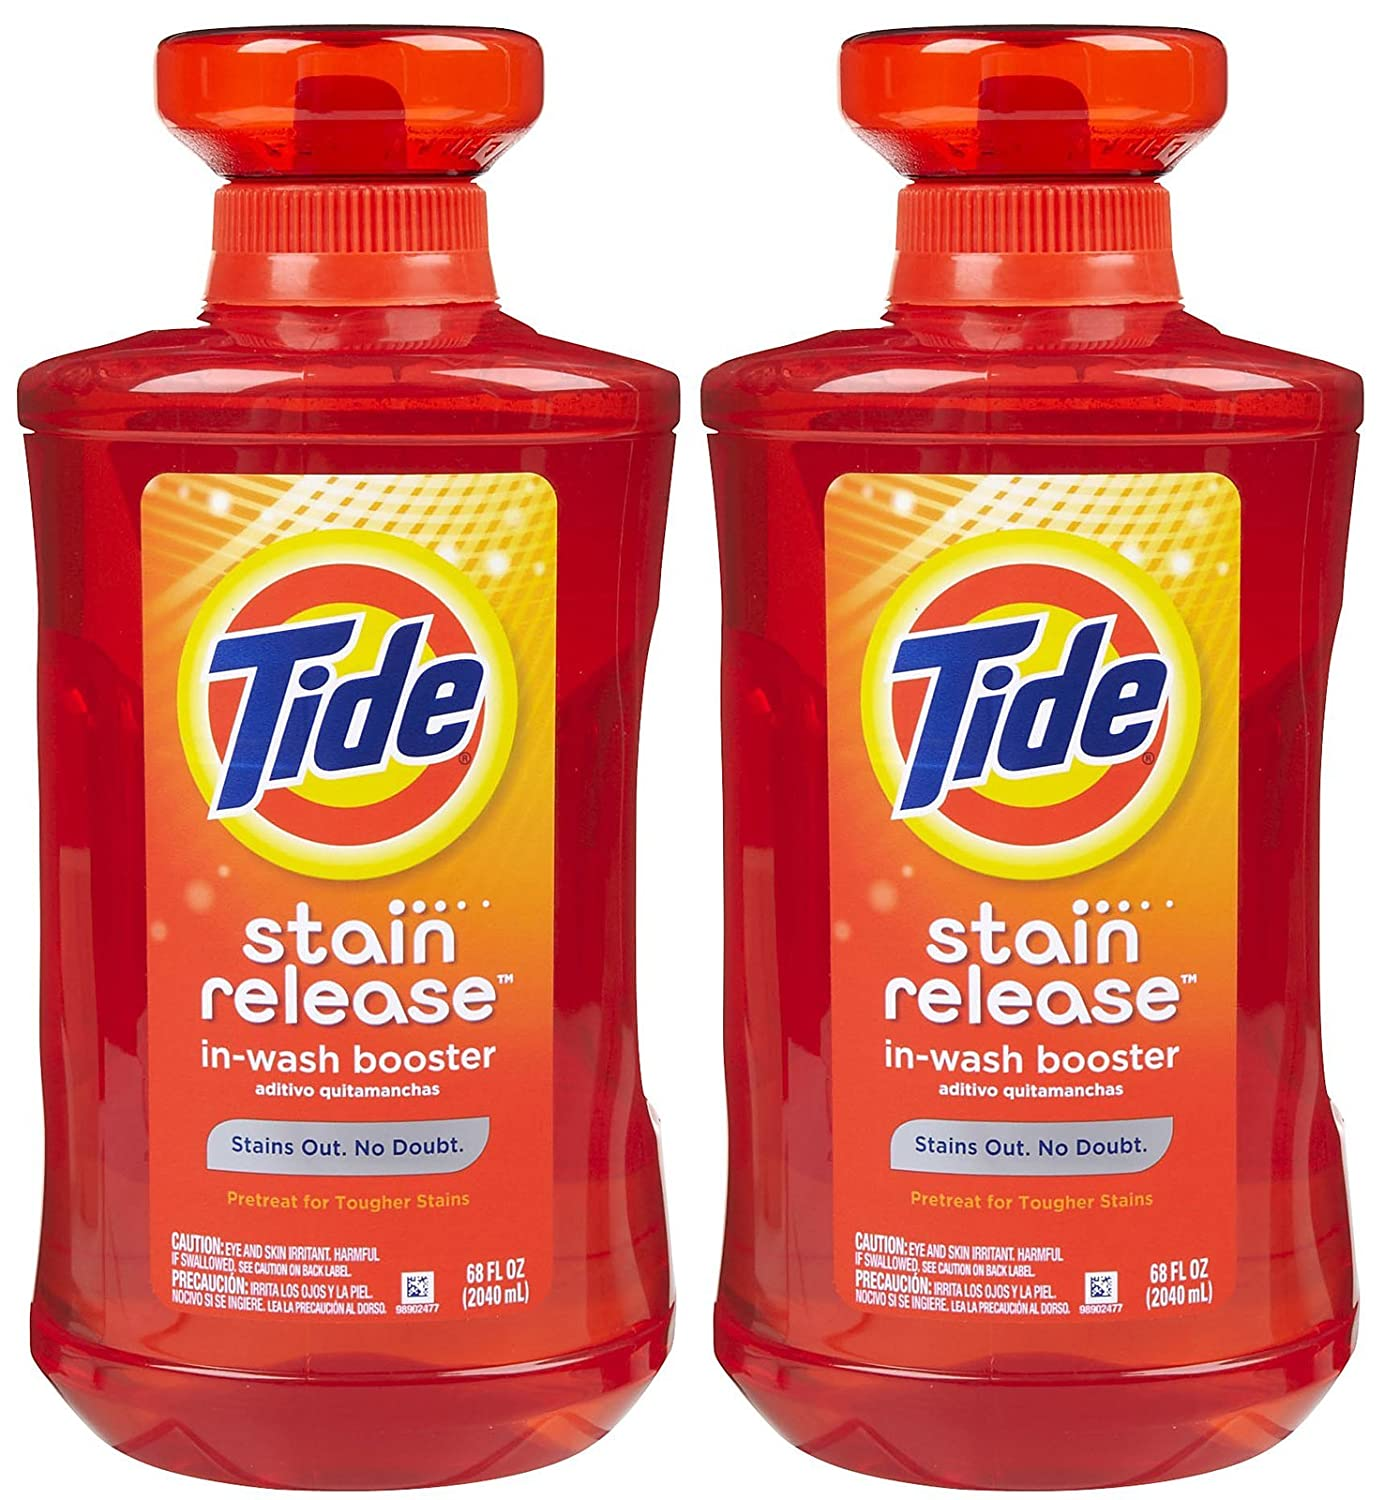 Amazon.com: Tide Stain Release Liquid In-Wash Booster, 68 oz-2 pack: Health & Personal Care